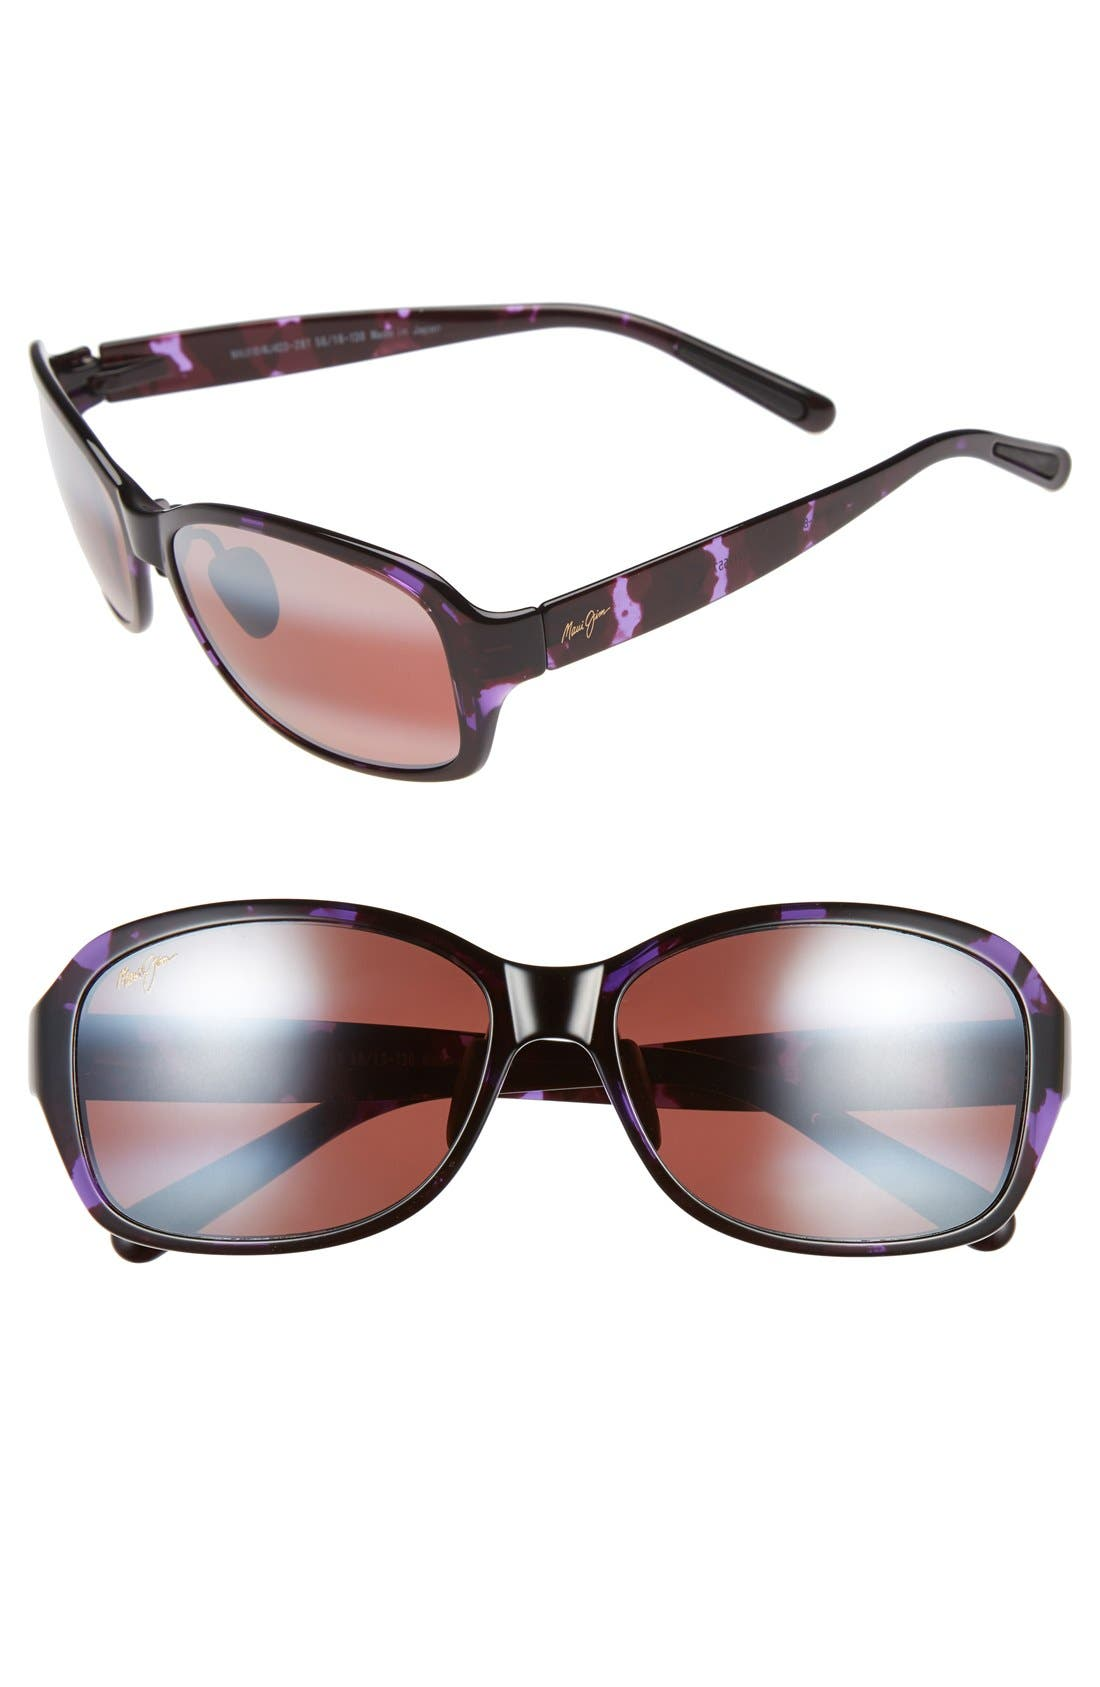 Koki Beach 56mm PolarizedPlus2<sup>®</sup> Sunglasses,                             Main thumbnail 1, color,                             Purple Tortoise/ Maui Rose